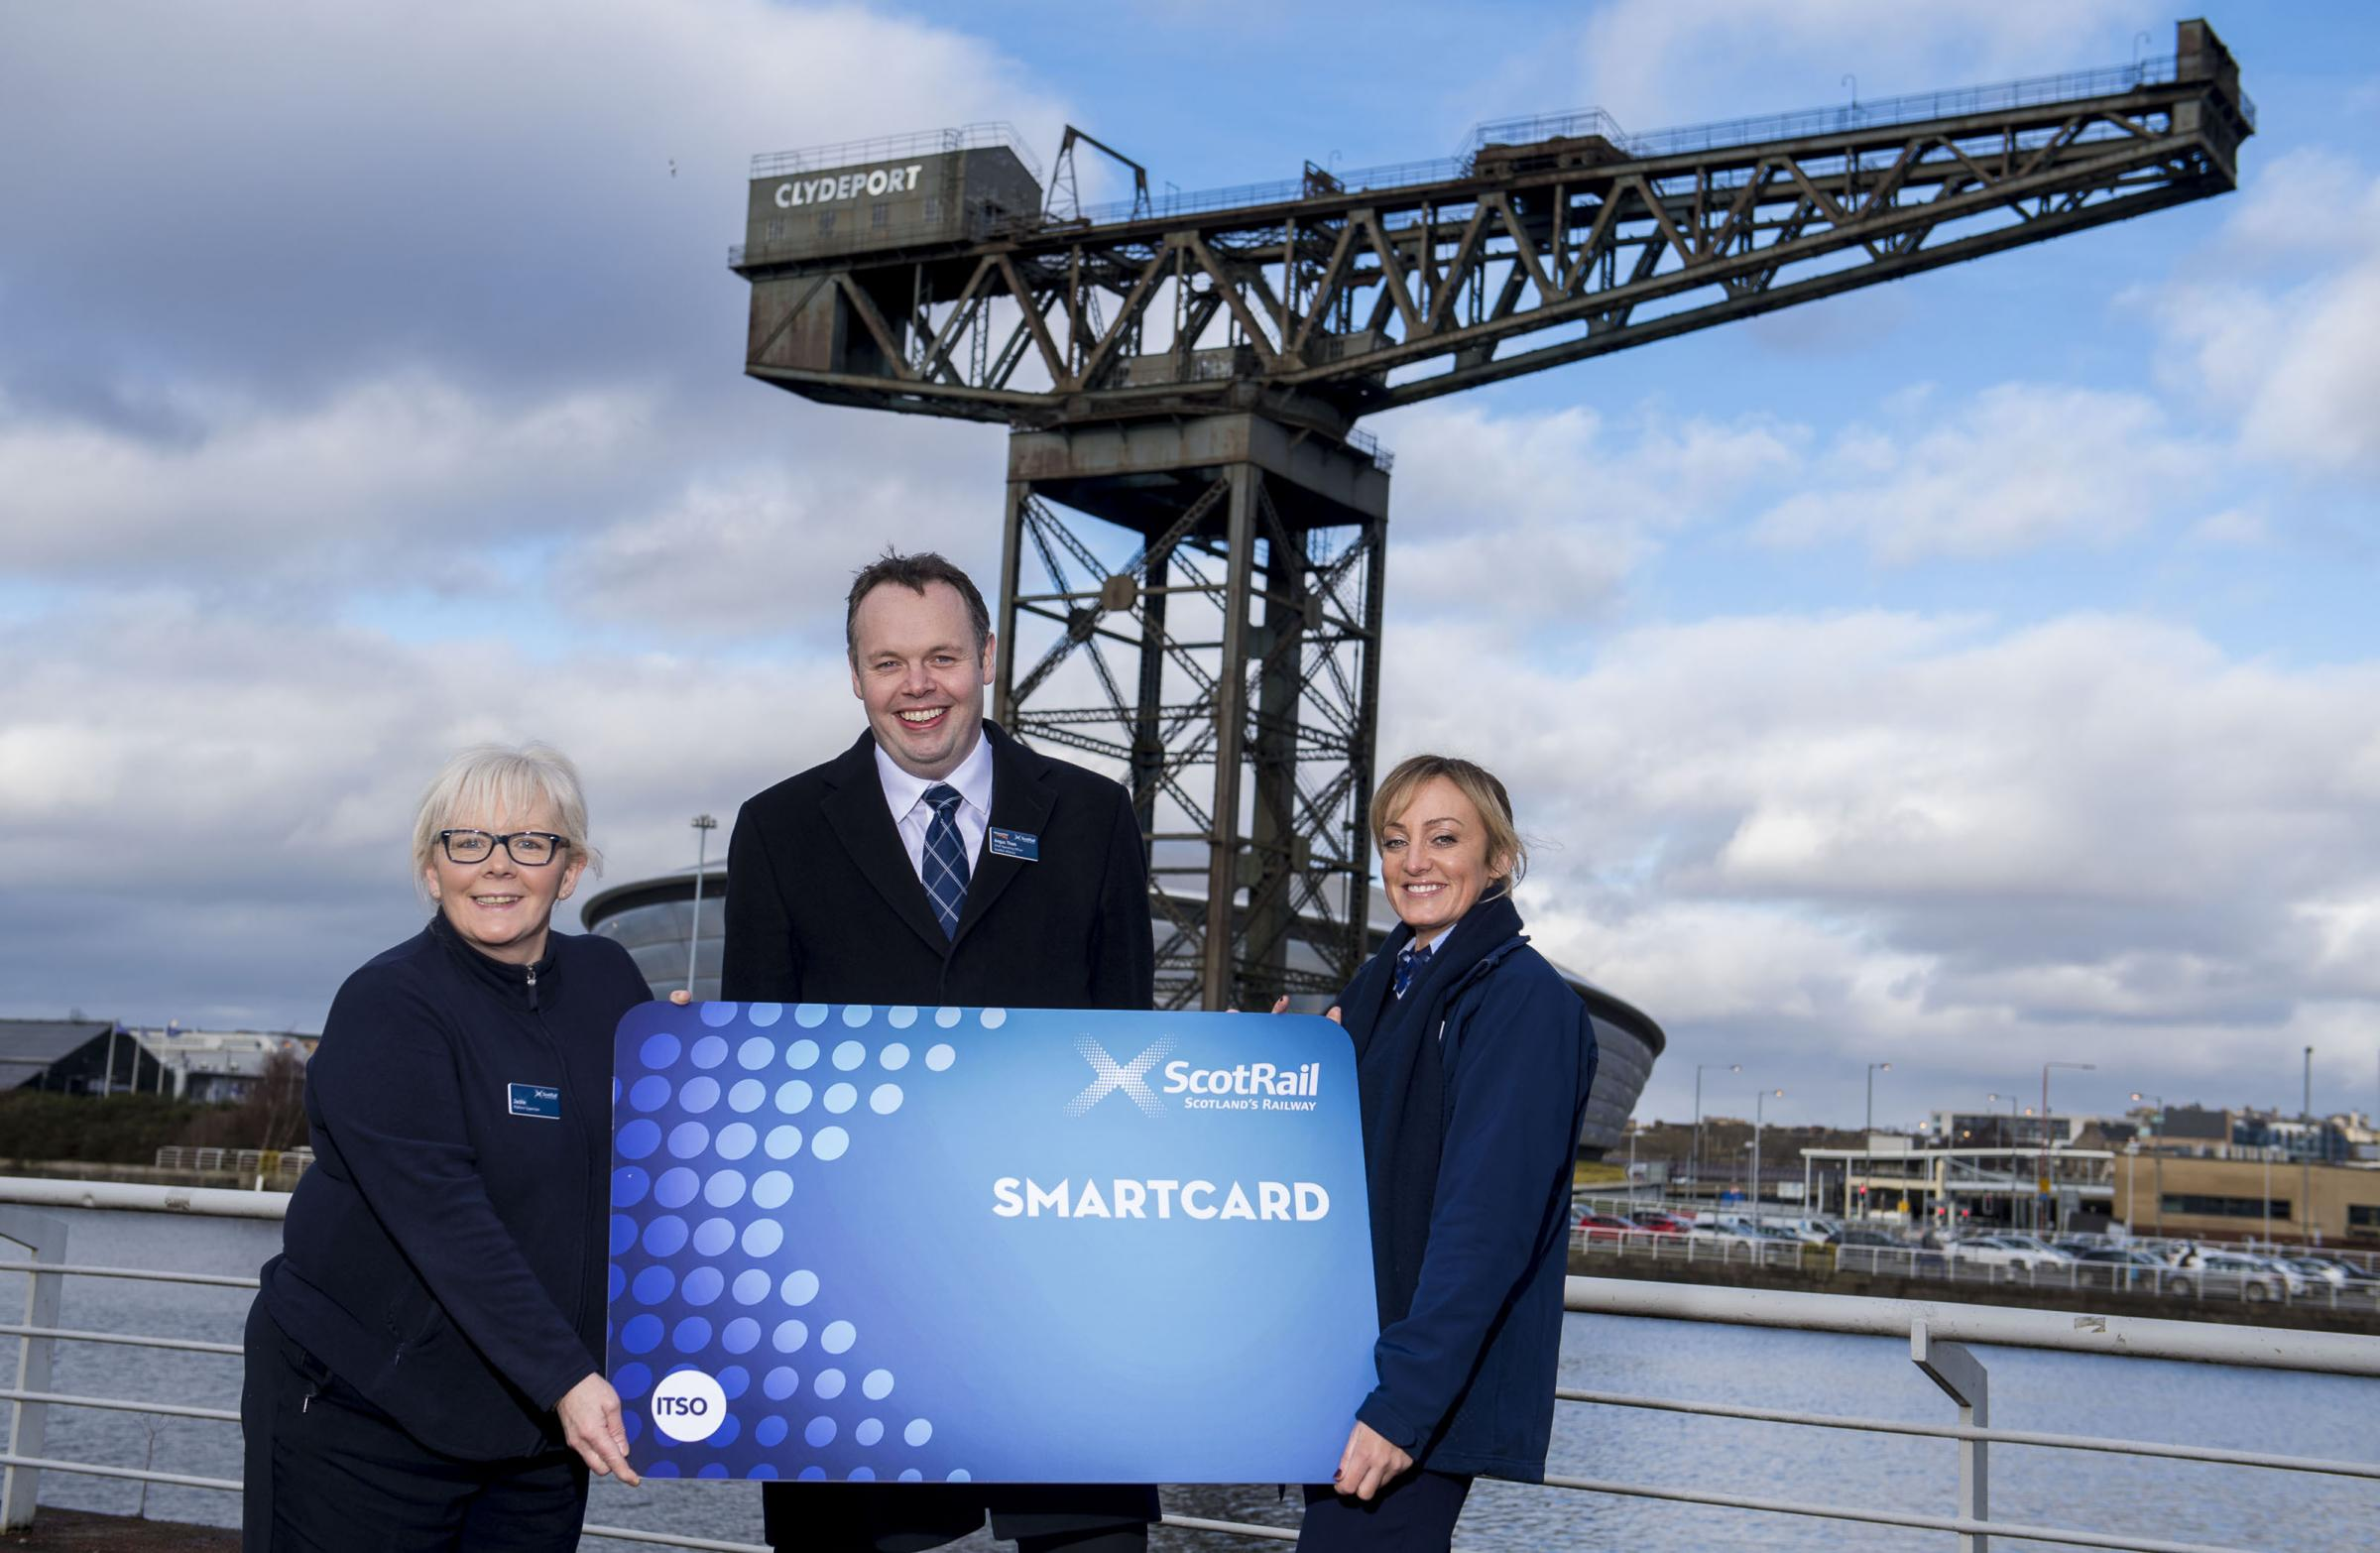 (L-R) Platform Supervisor Jackie Williamson, Chief Operating Officer Angus Thom, and Service Assistant Suzanne Customer promote the Scotrail Smartcard. Photo: ScotRail